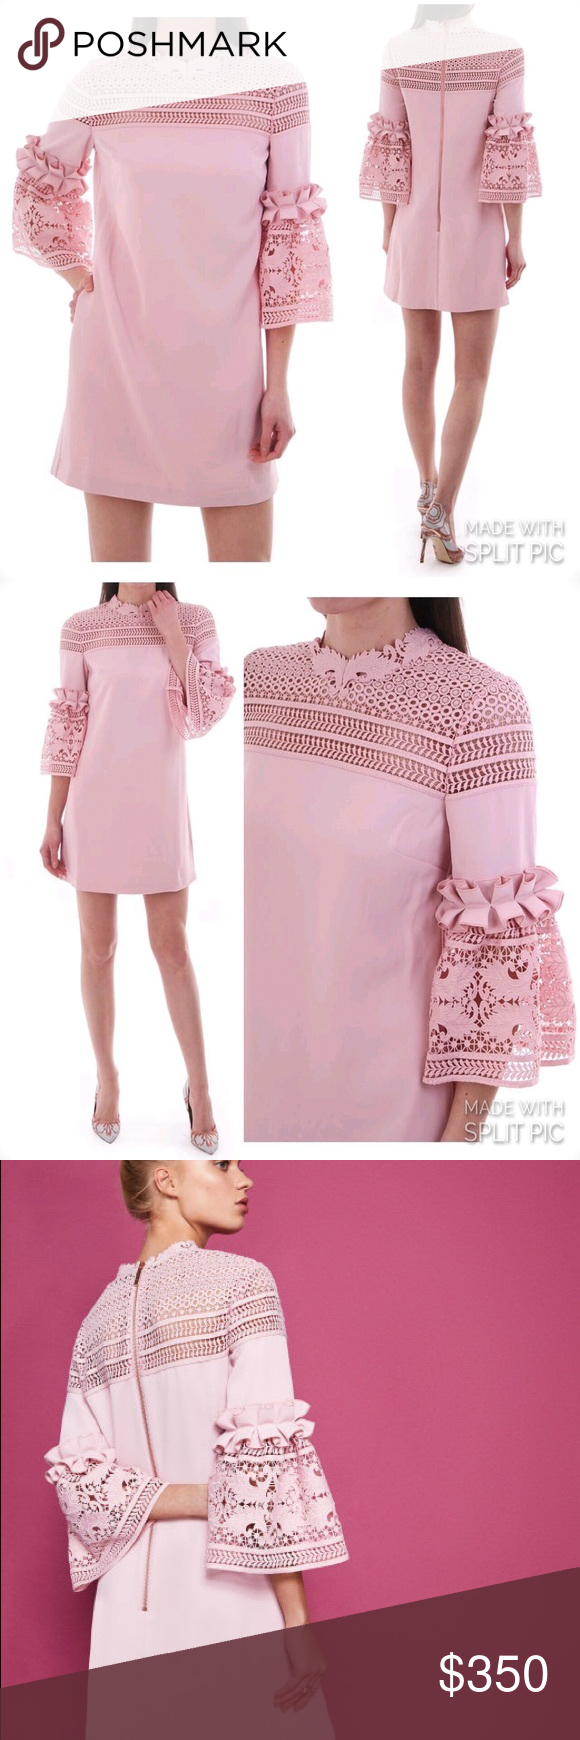 f6580532e TED BAKER LUCILA Lace bell sleeved tunic dress Embrace a touch of texture  this season